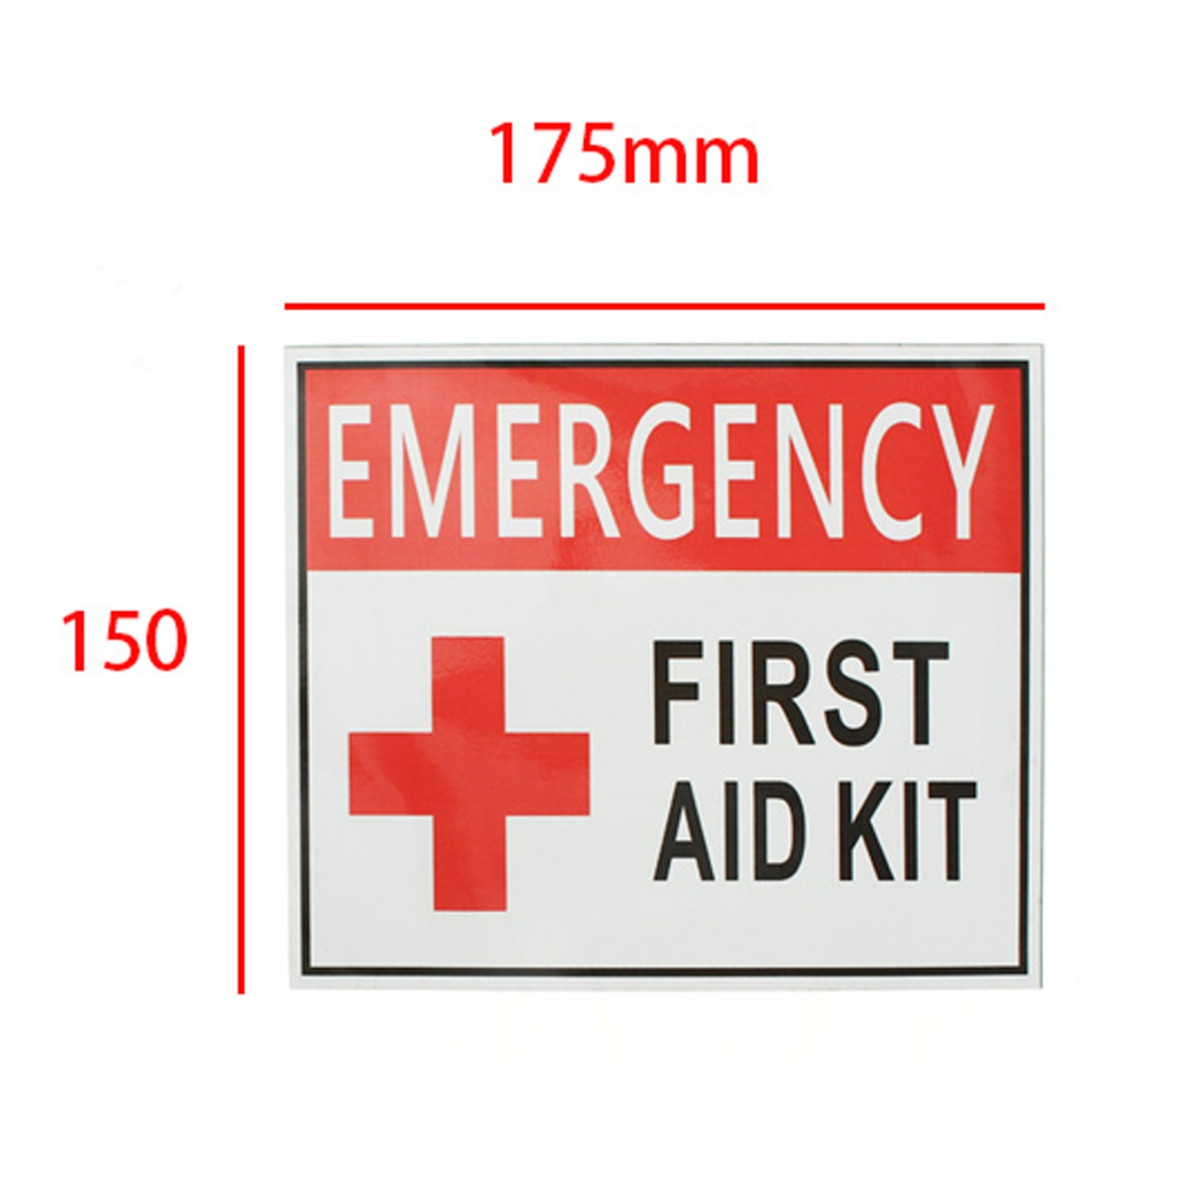 4 Size EMERGENCY FIRST AID KIT Vinyl Sticker Label Signs Red Cross Health Safety Home Living School Outdoor MATCC US,150*175mm color